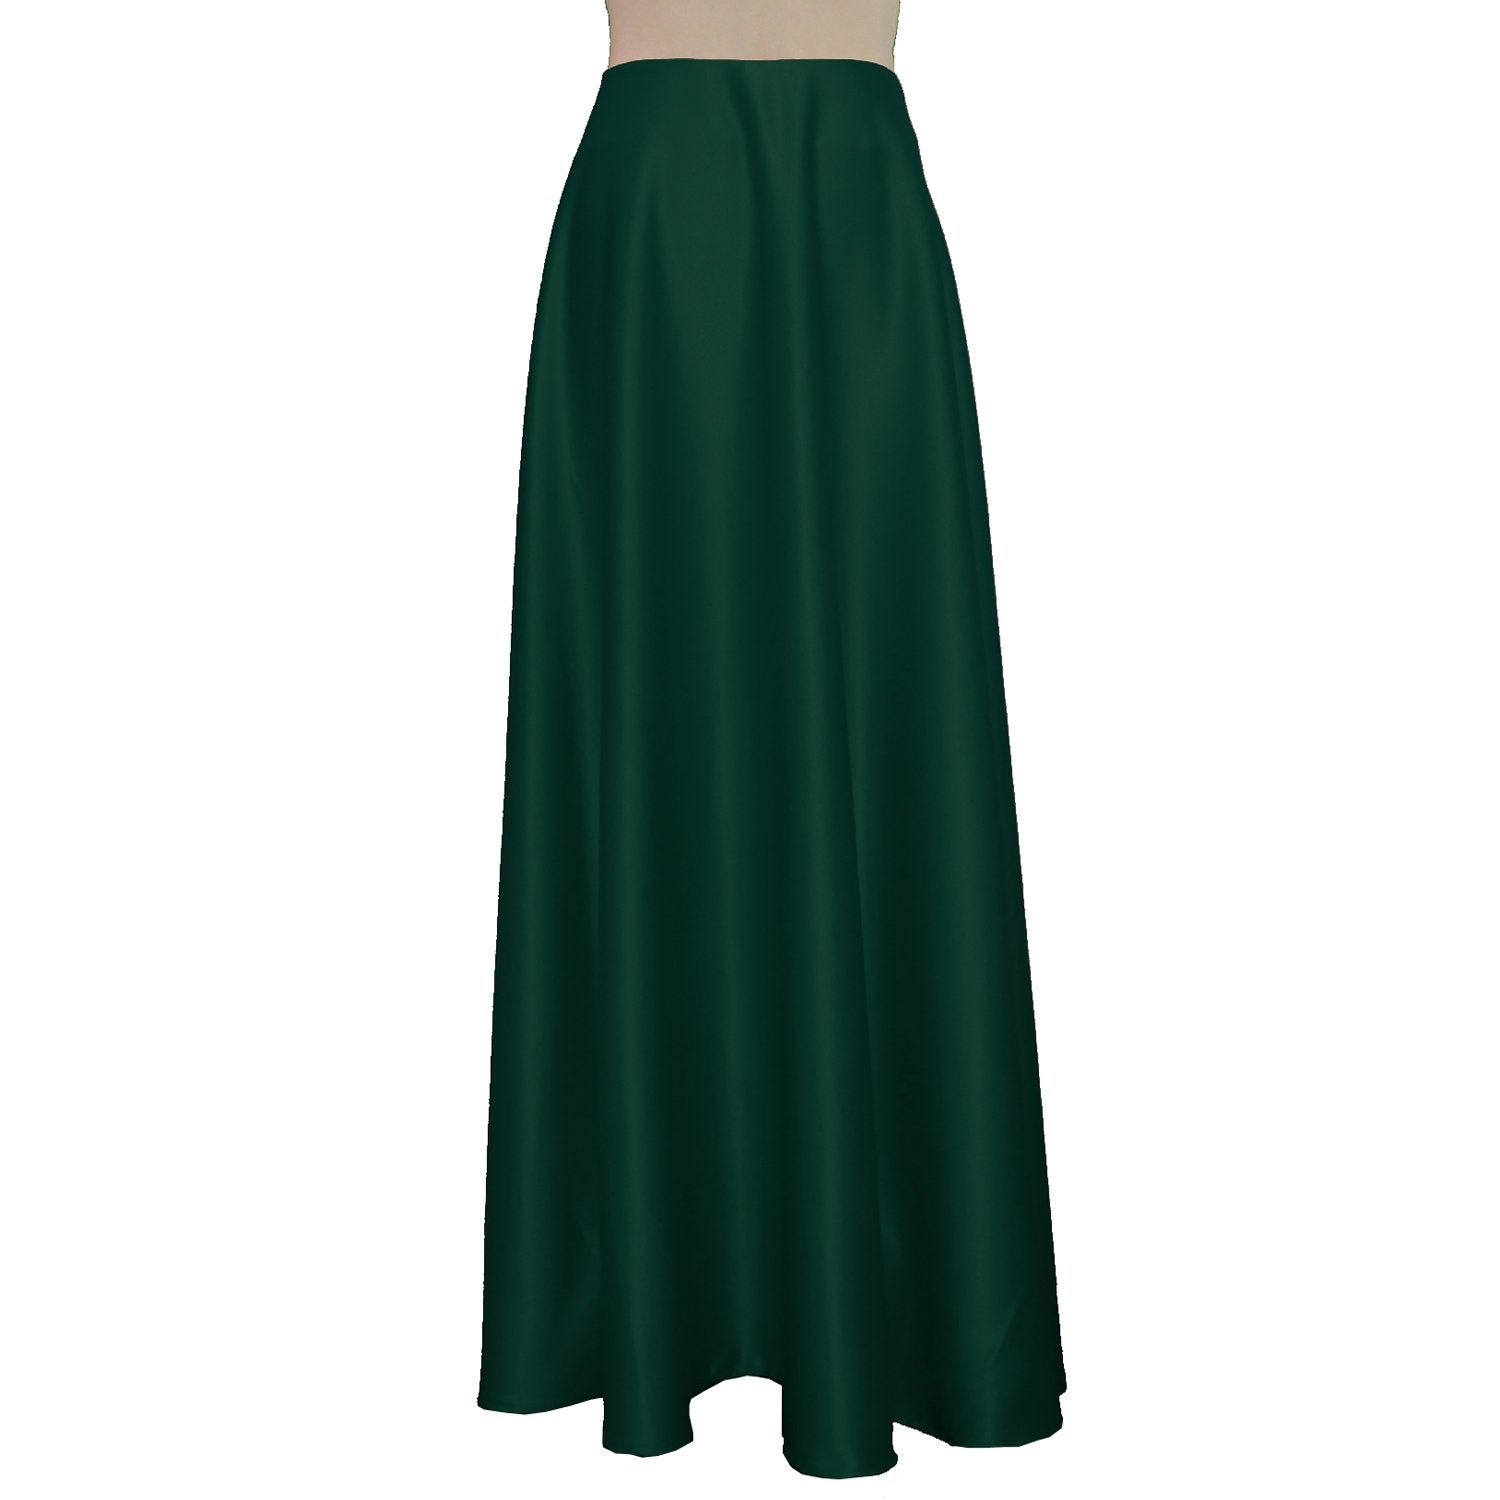 Maxi formal skirt Dark green bridesmaid wedding long skirt Duchess floor length skirt